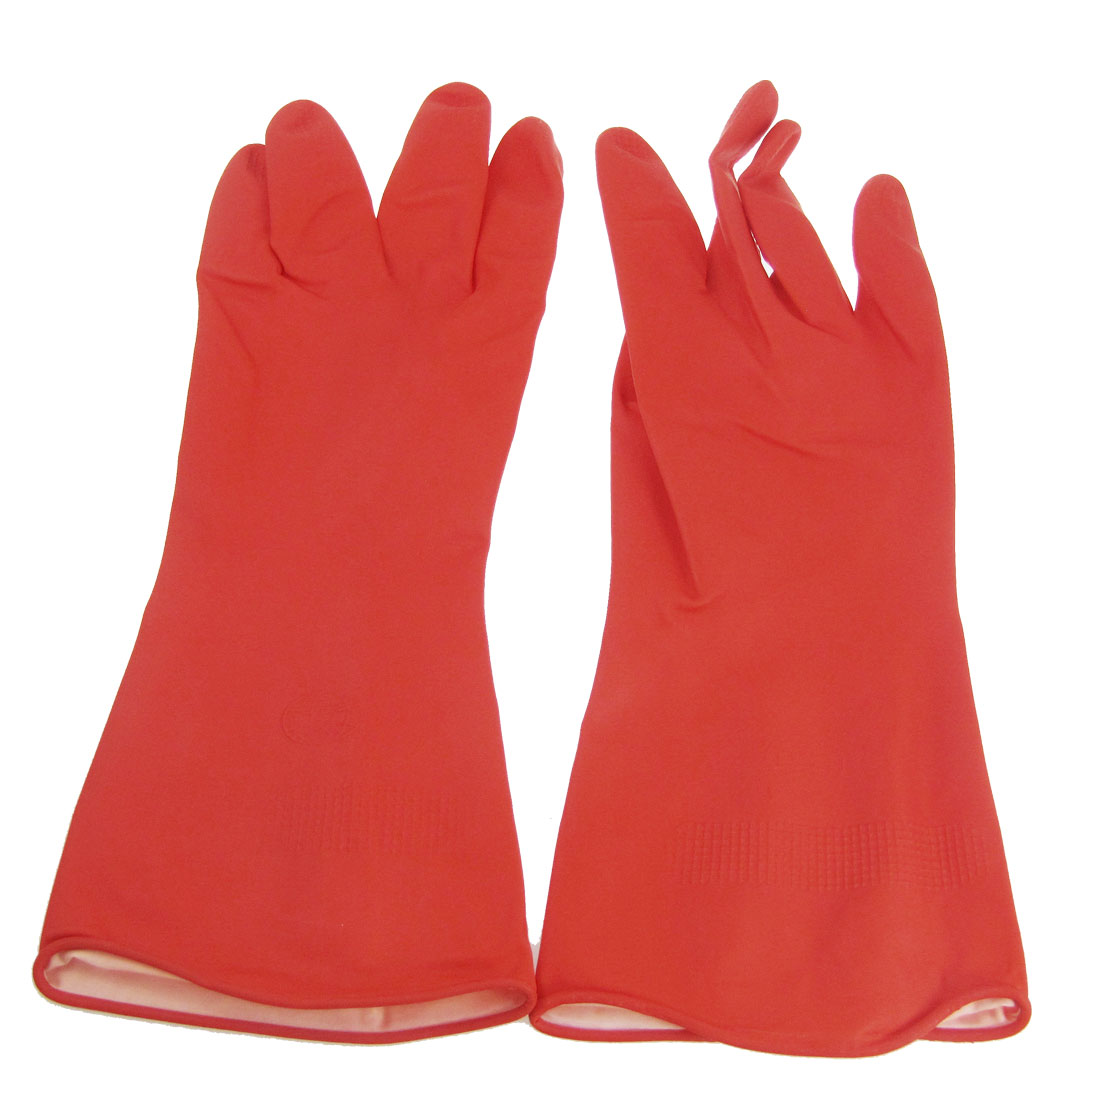 "Industry Household 12"" Length Red Latex Working Gloves"